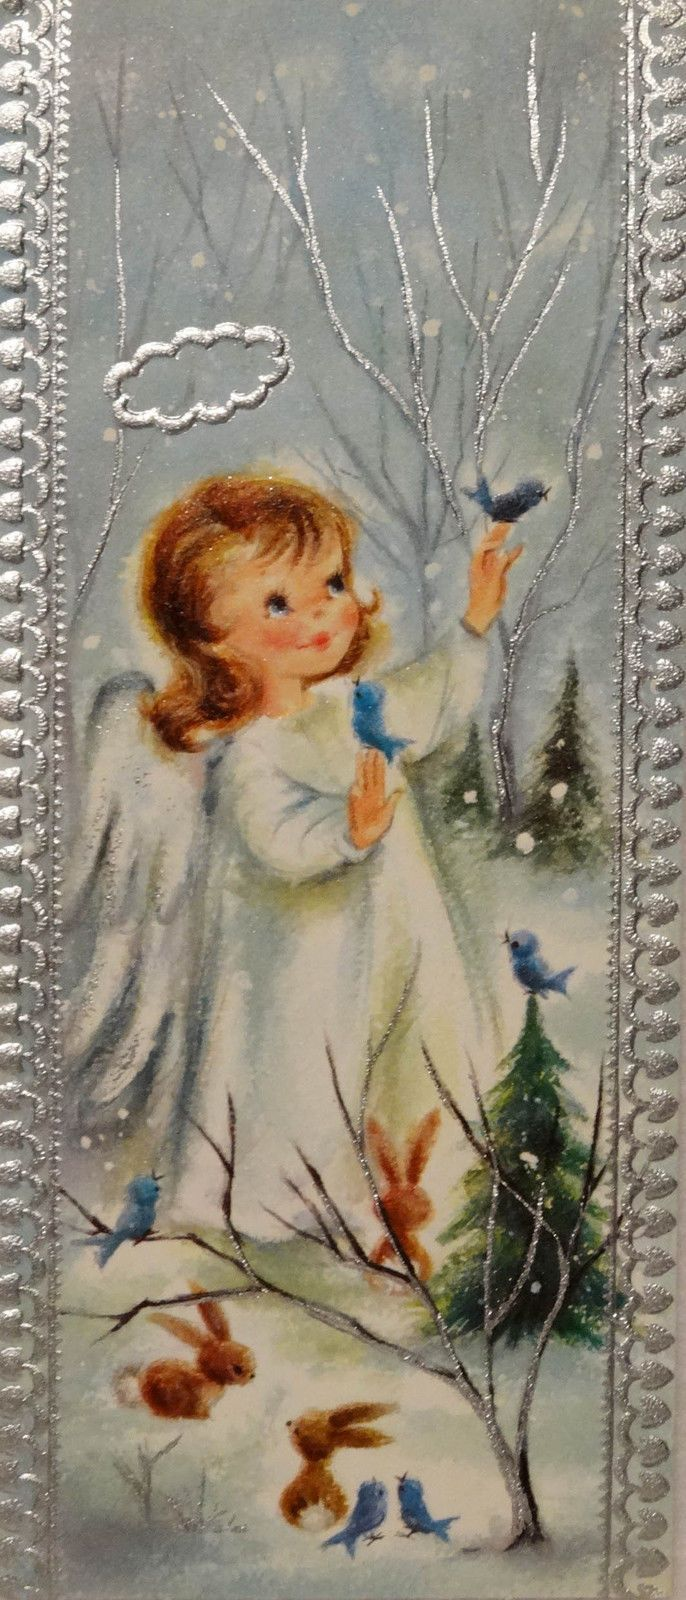 145 60s Sweet Girl Angel in The Woods Birds Animals Vtg Christmas Card Greeting | eBay